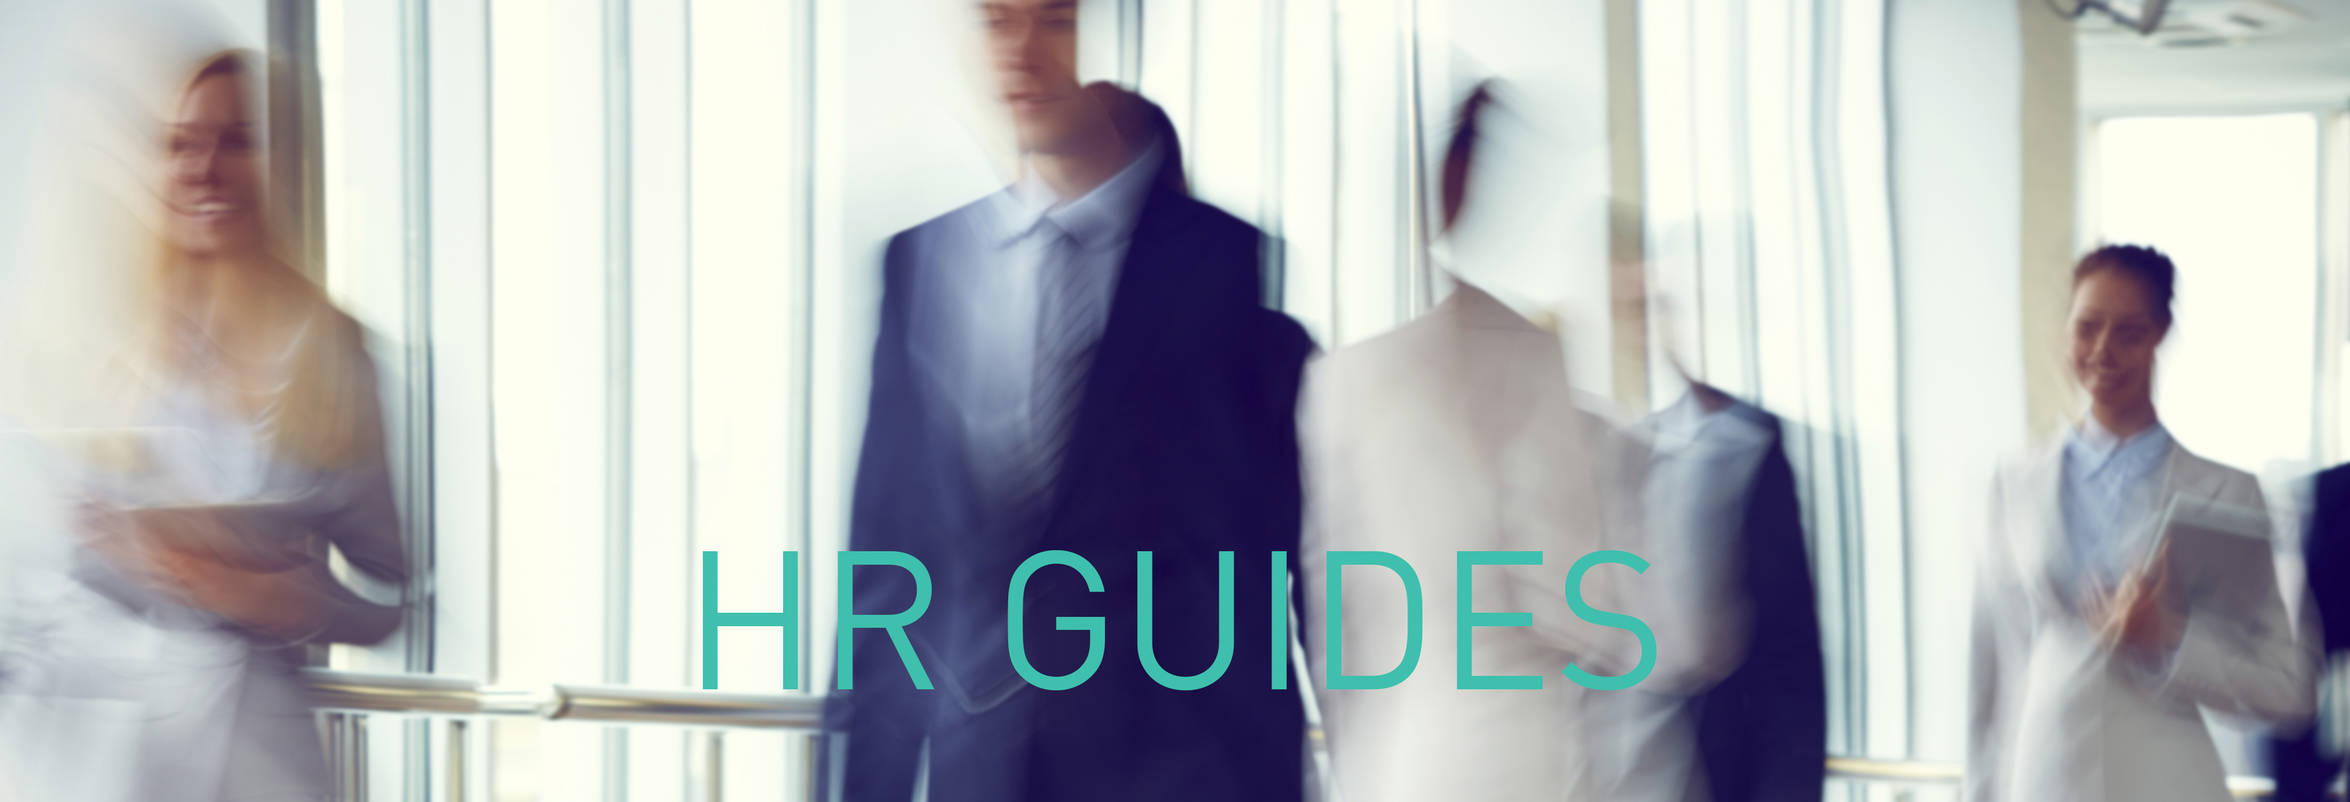 HR Guides